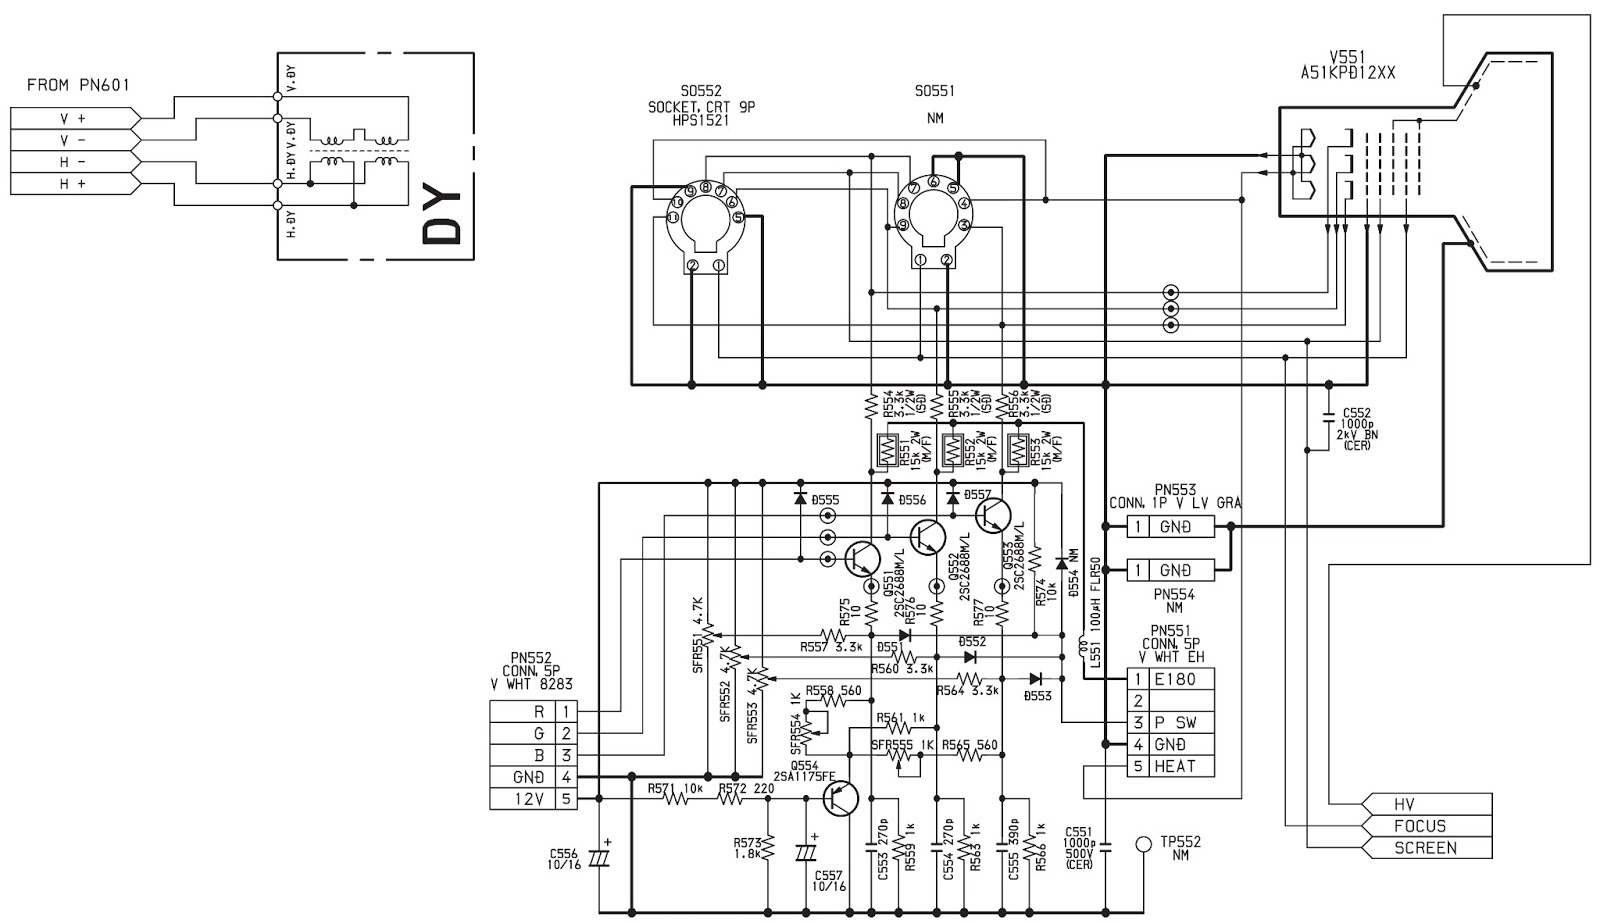 untitled.bmp electro help aiwa tv a 219 schematic diagram using ics aiwa cdc-x144 wiring diagram at aneh.co